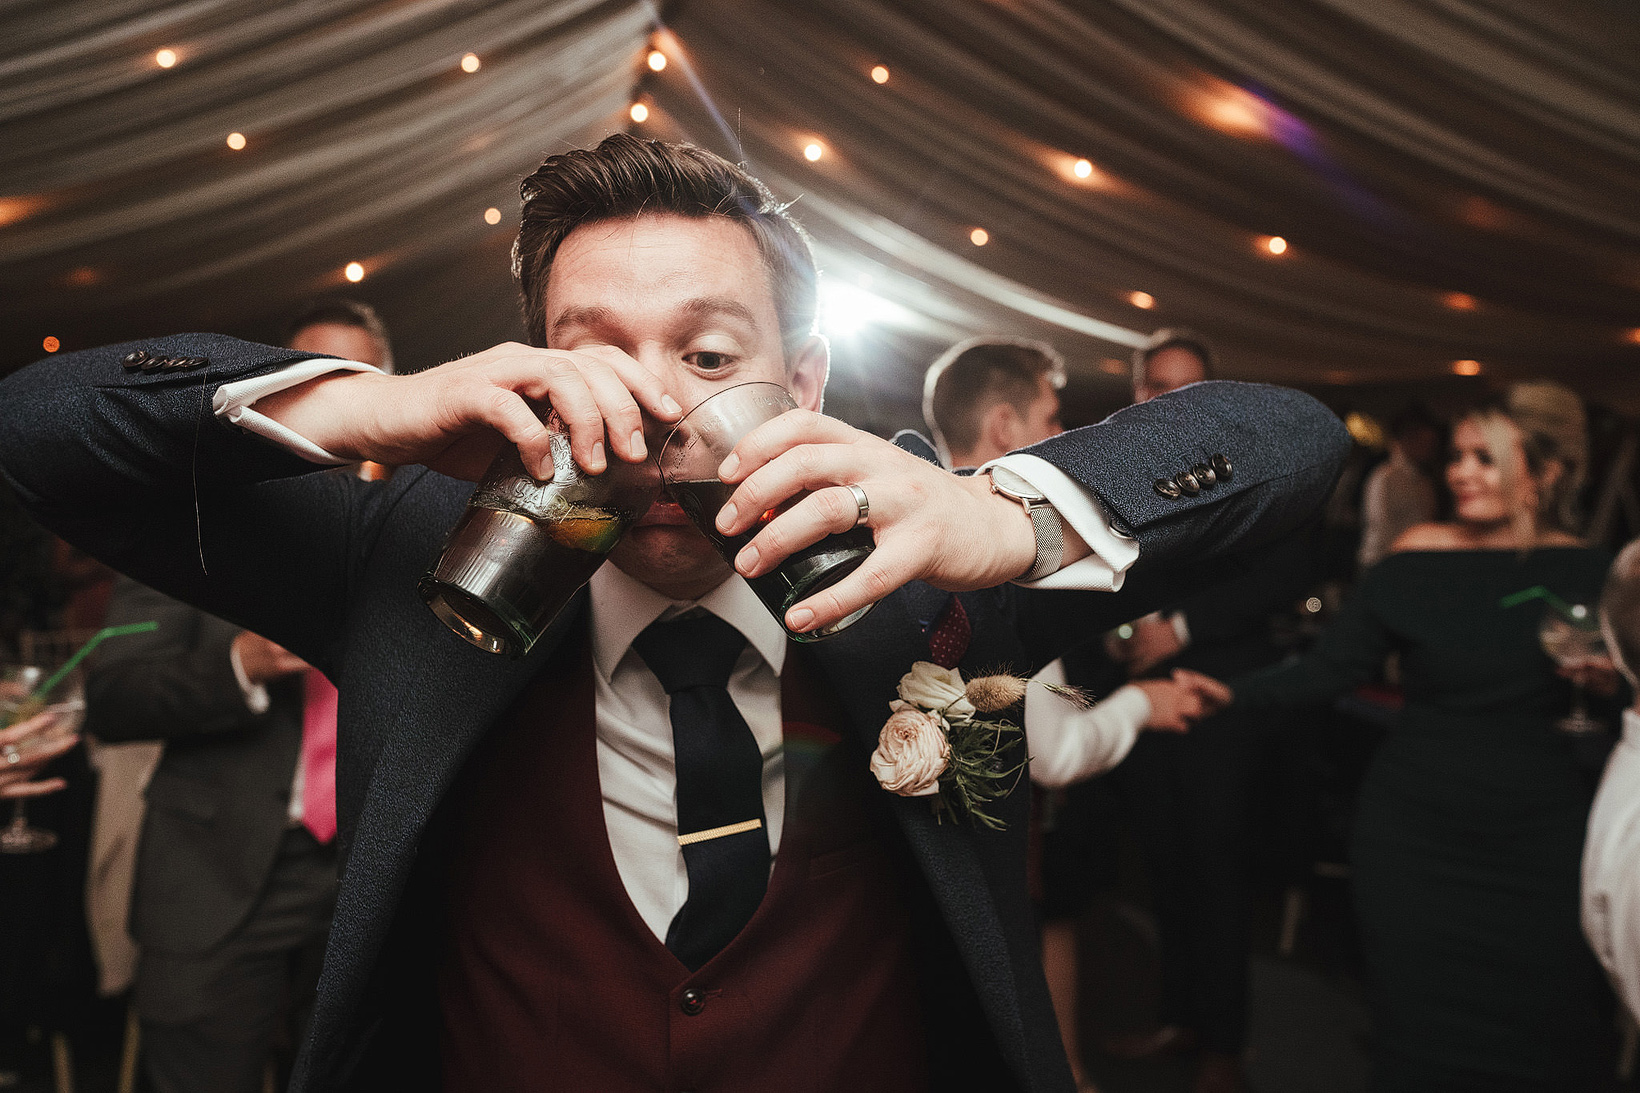 South East Wedding Photographer Of The Year